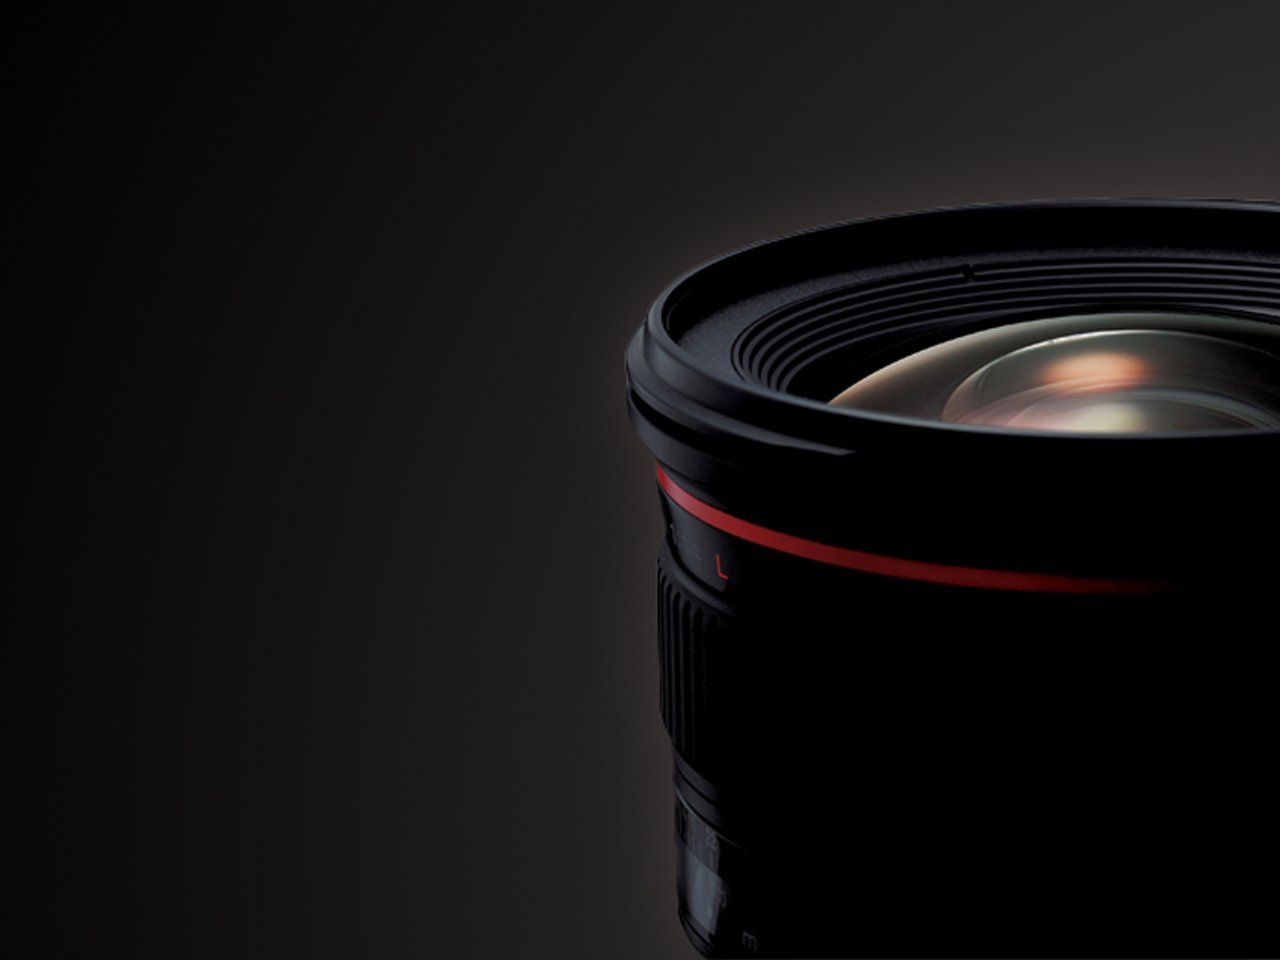 L-series EF Lenses have optical excellence in low light and tricky conditions.